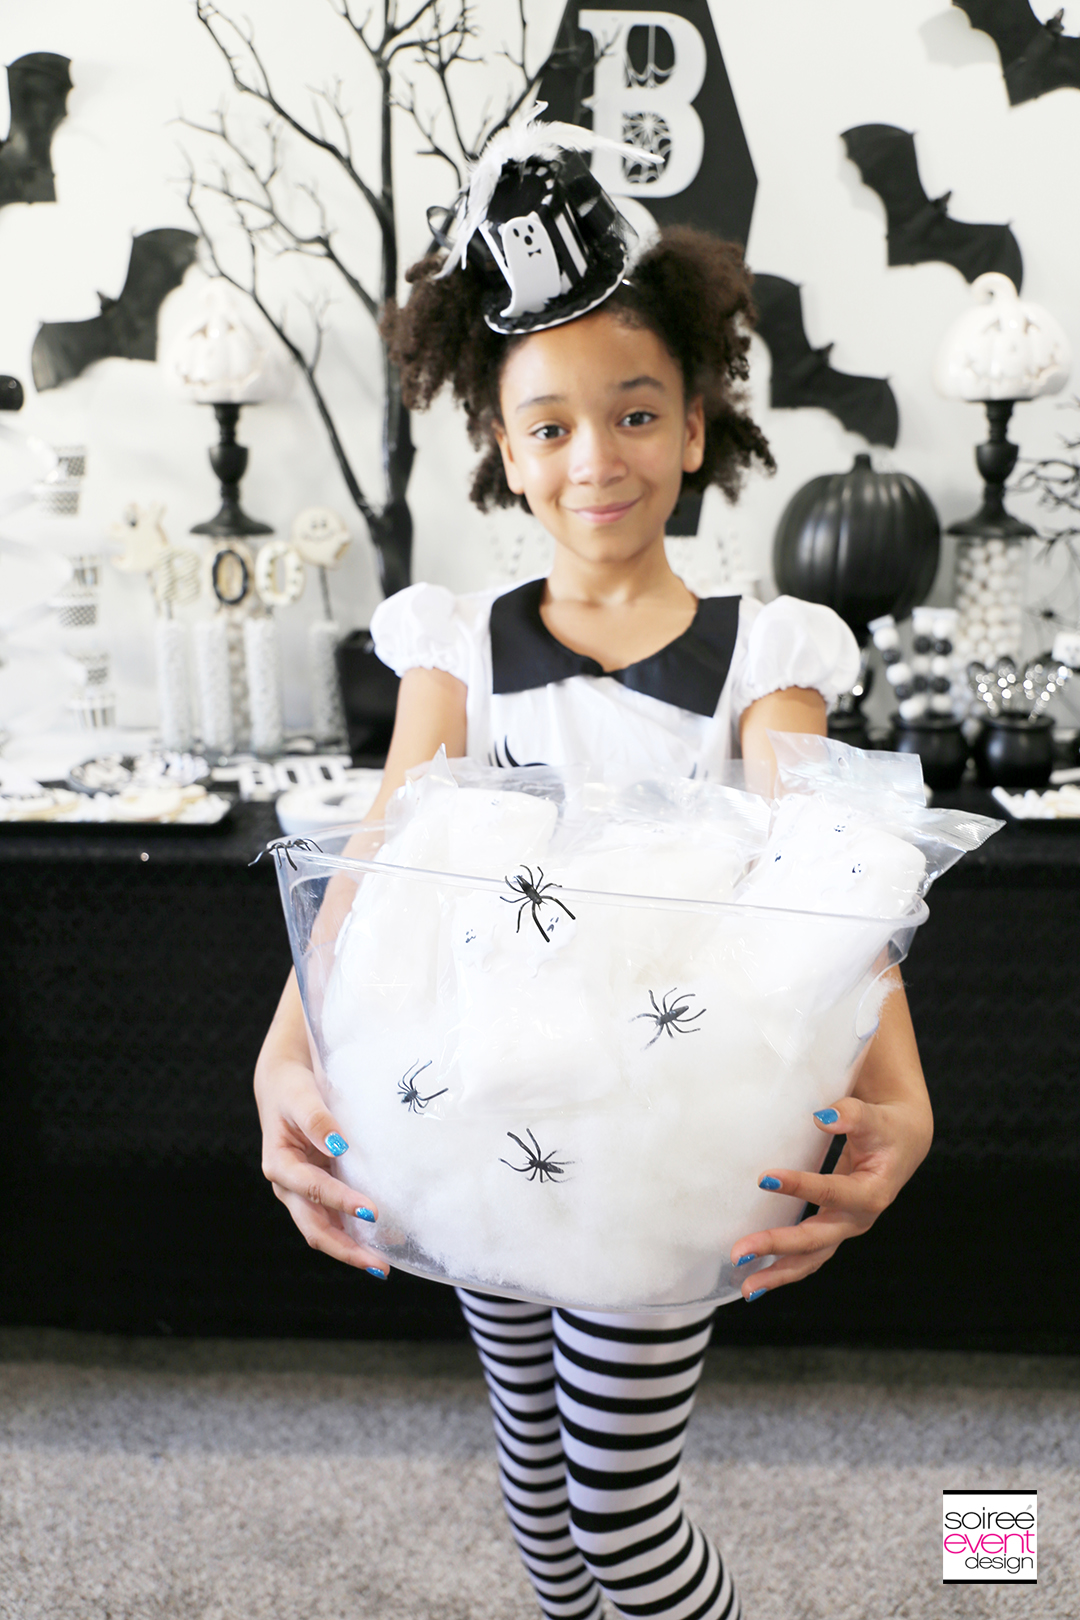 Black and White Halloween Party Ideas - White Cotton Candy